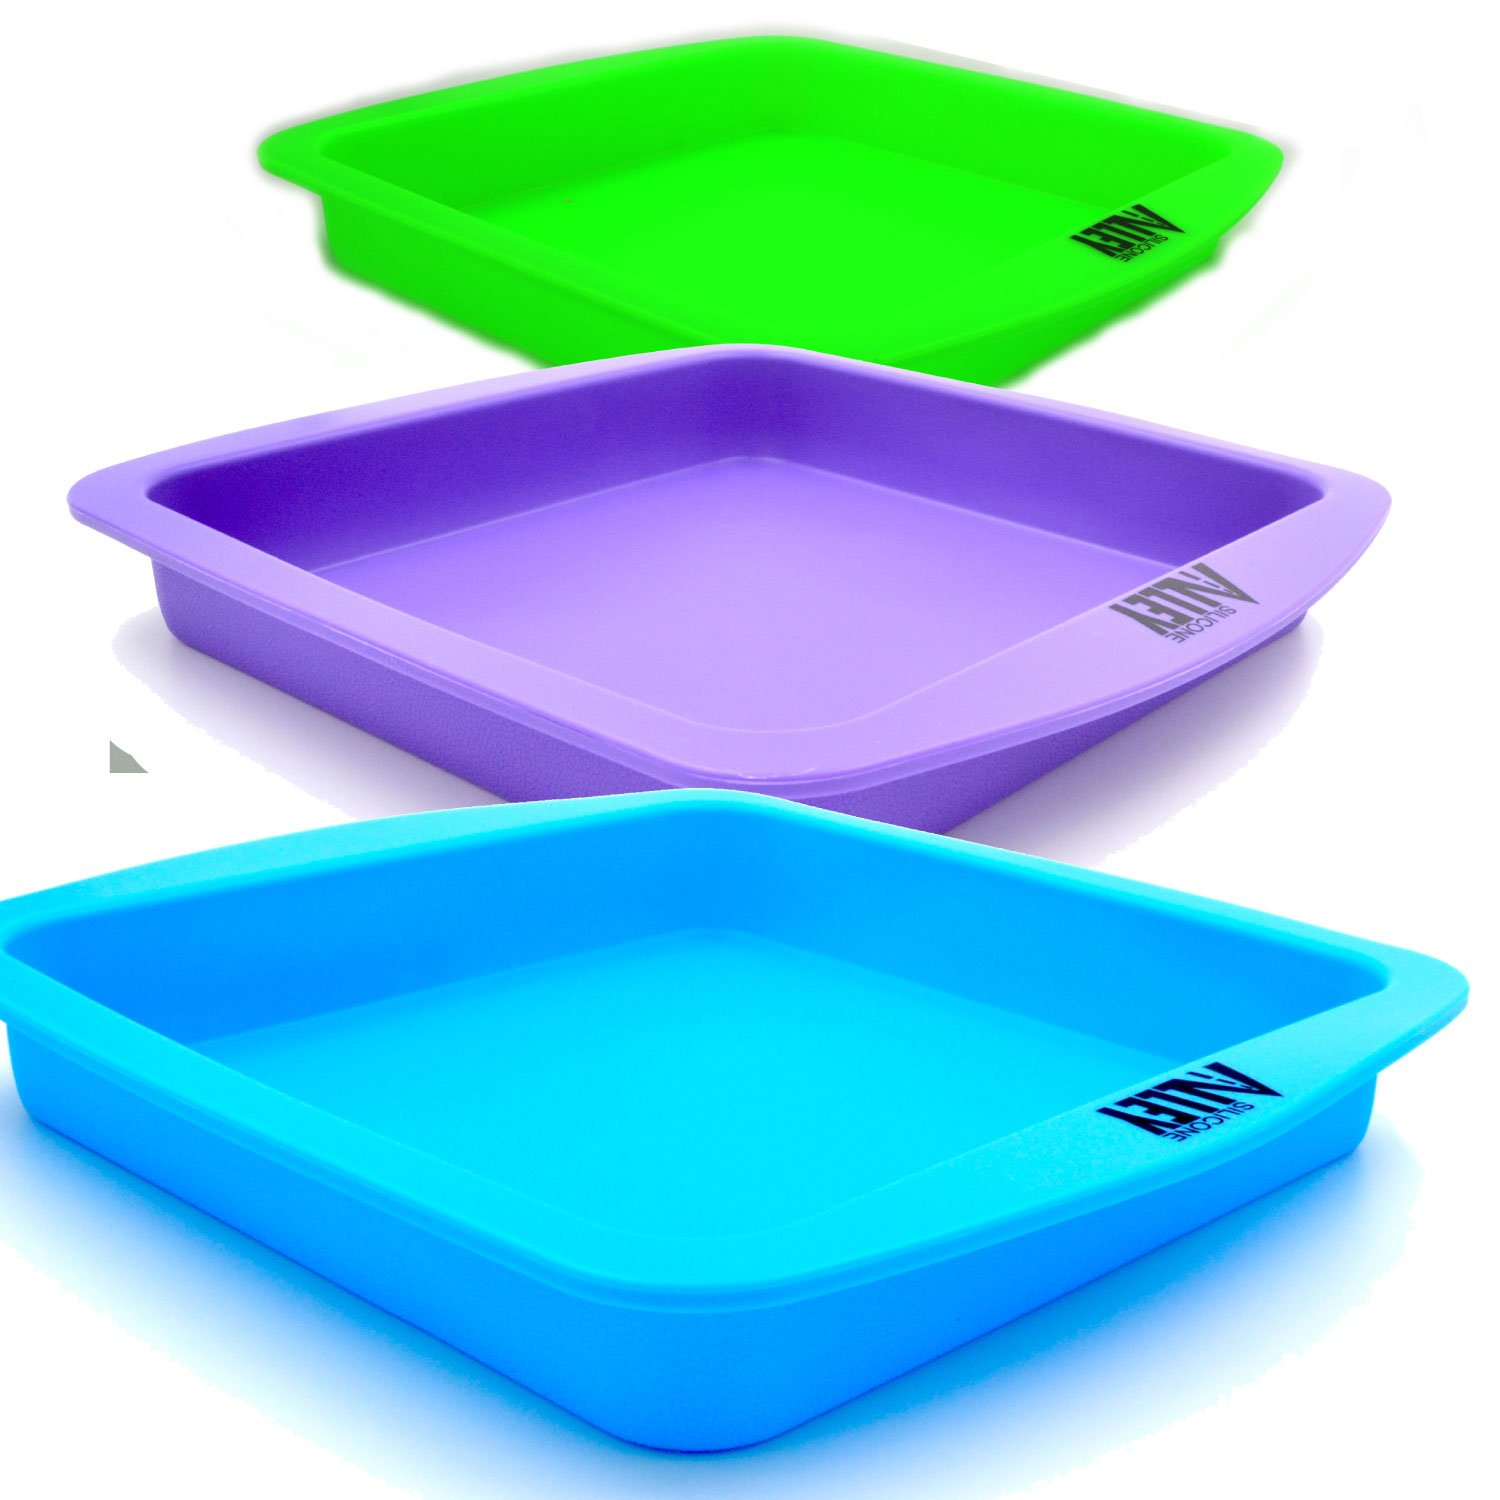 Wax Deep Dish Container Tray - Bulk Set of 3 - Assorted Colors SILICONE ALLEY